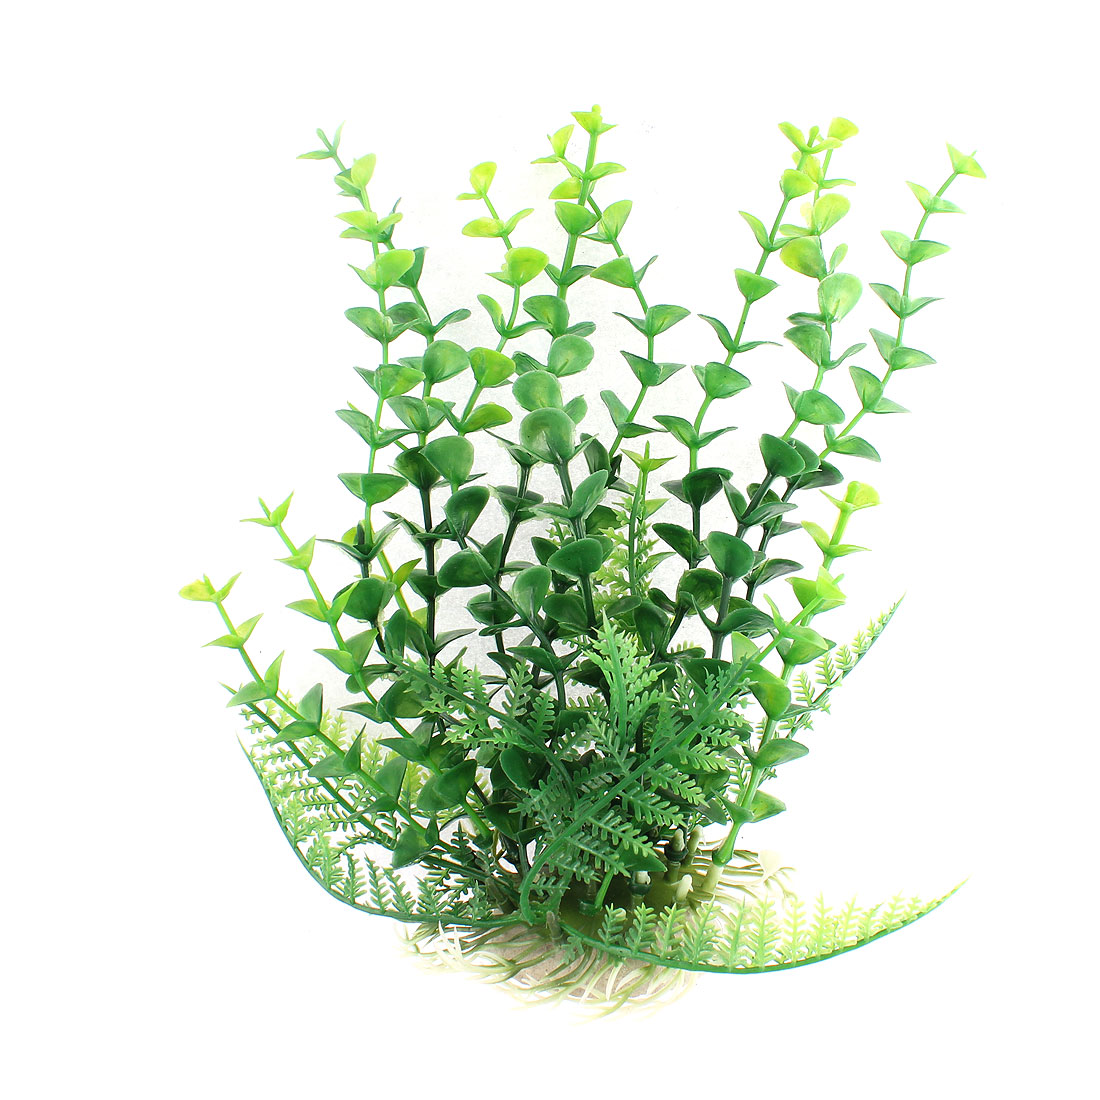 Aquarium Plastic Manmade Underwater Plant Ornament Green 8.3 Inch Height